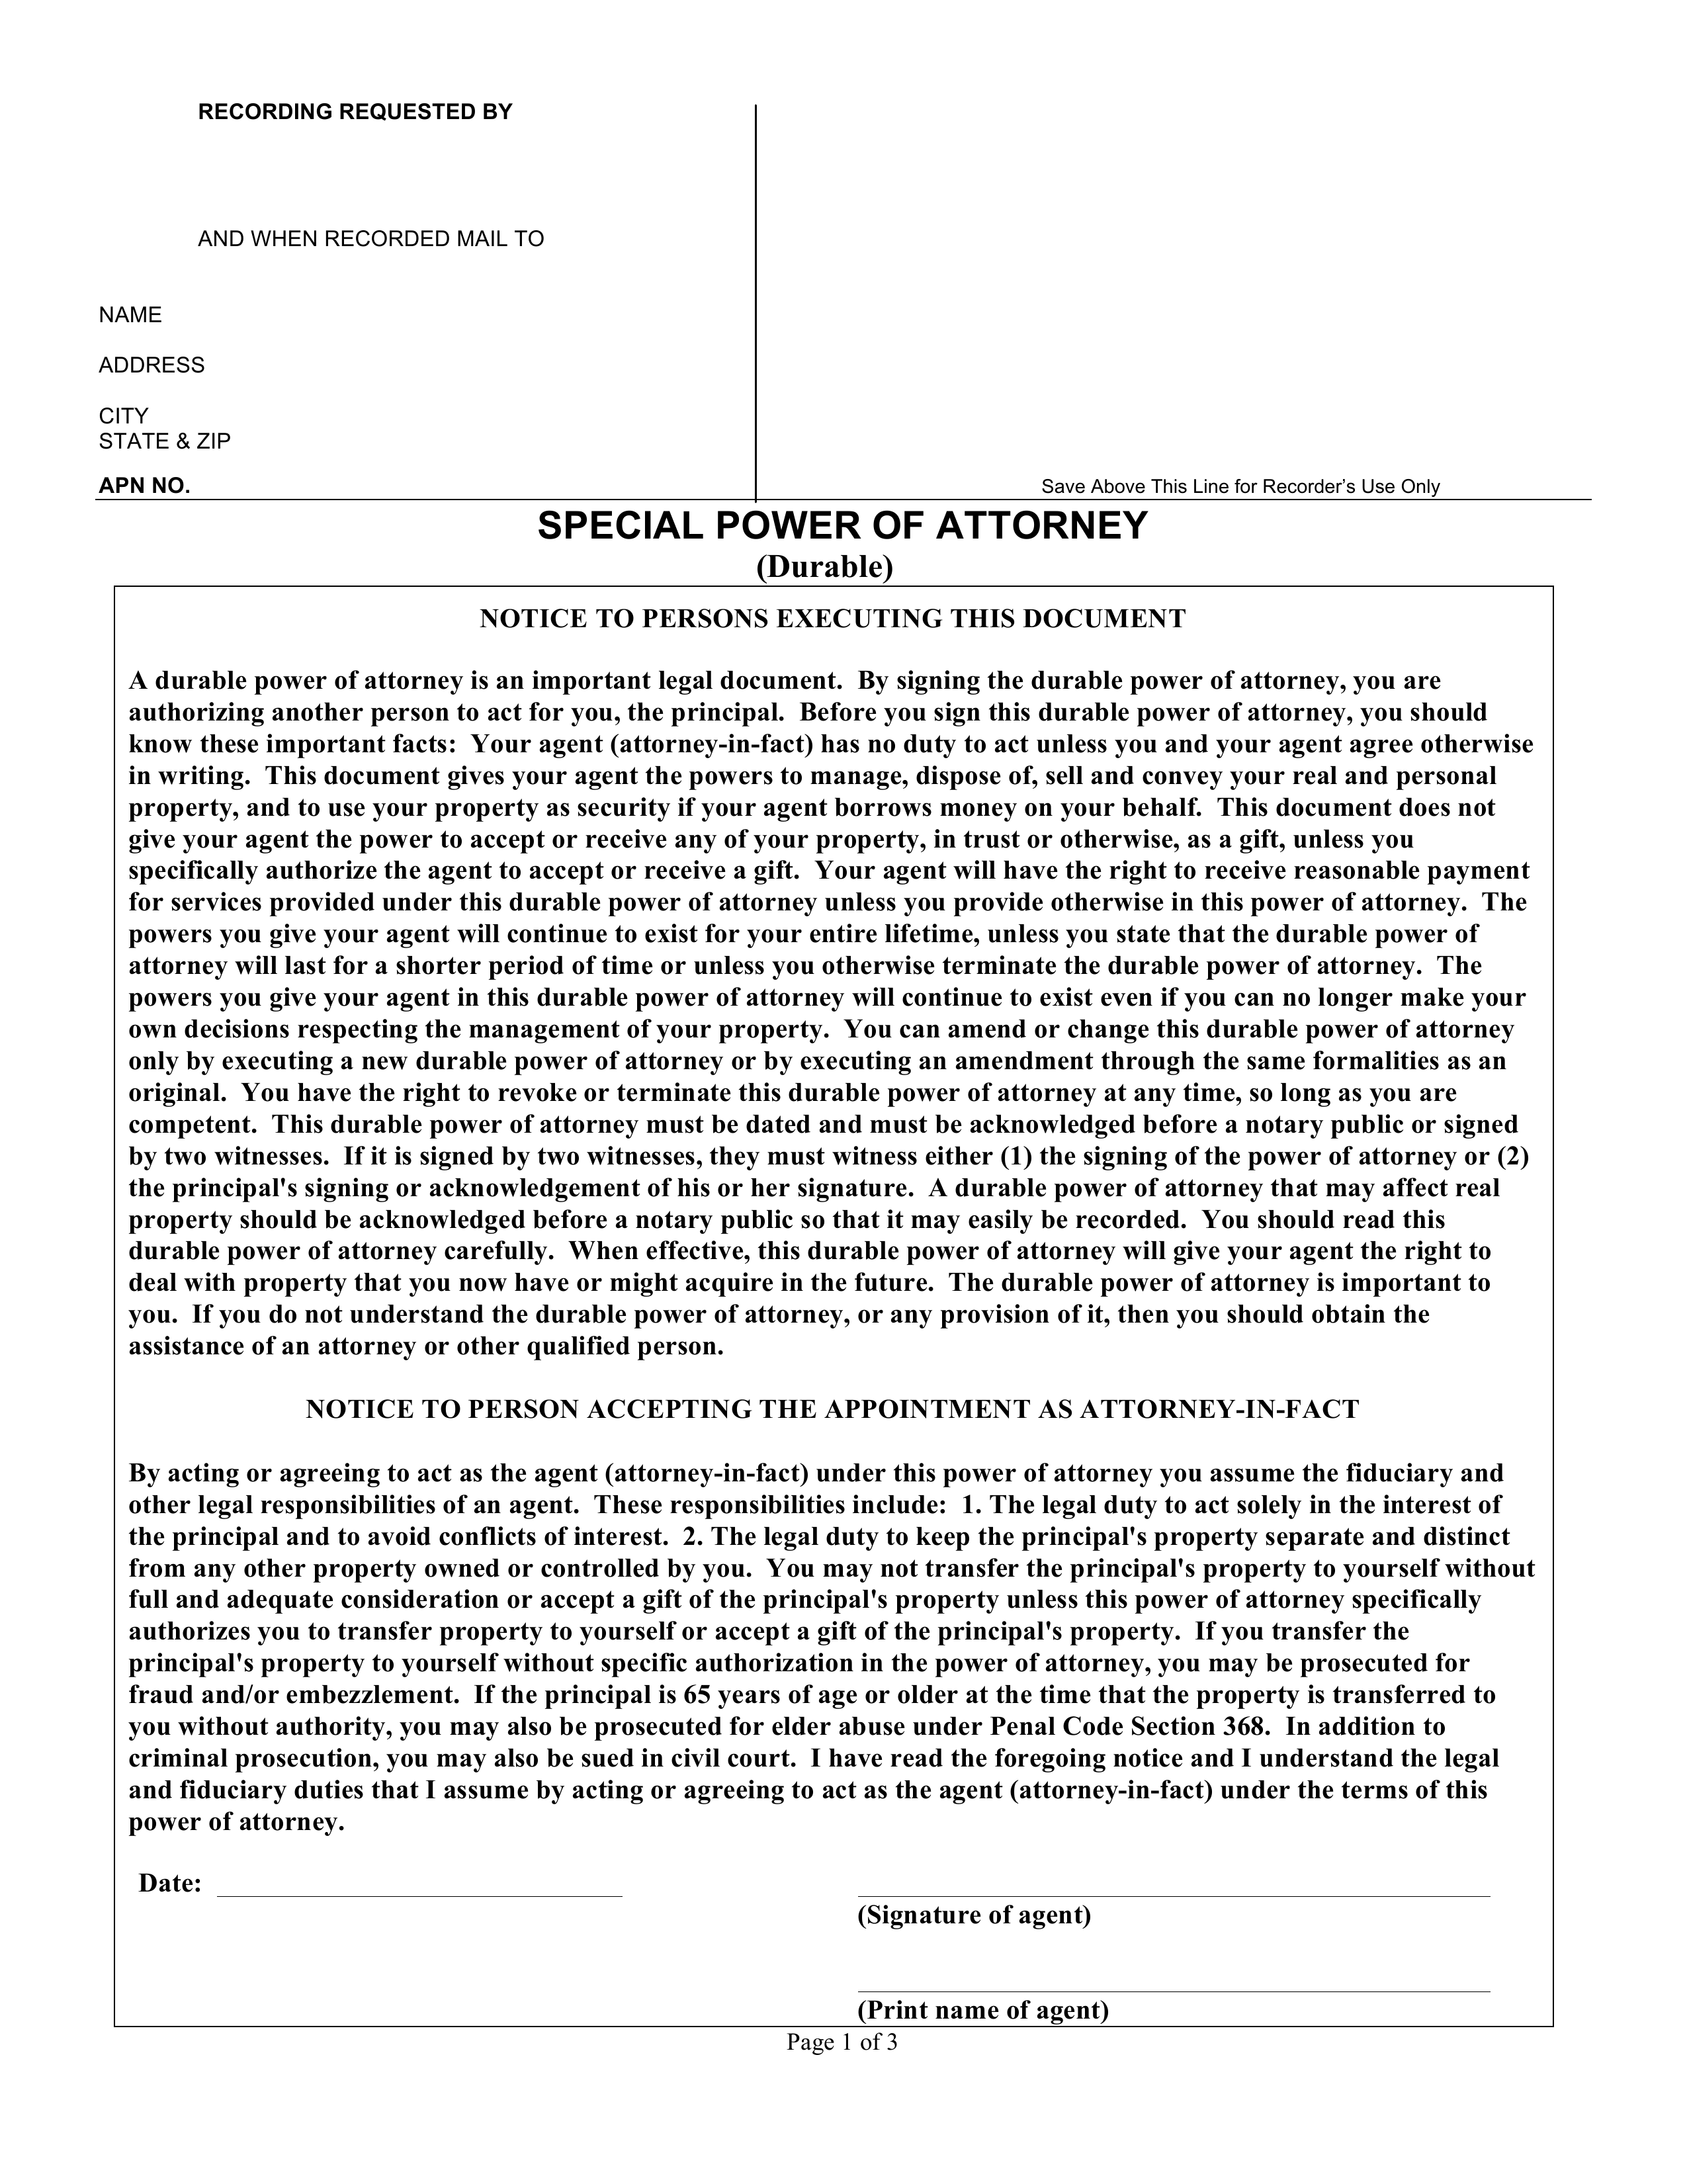 limited power of attorney form california  Free California Limited Power of Attorney Form - Word | PDF ...